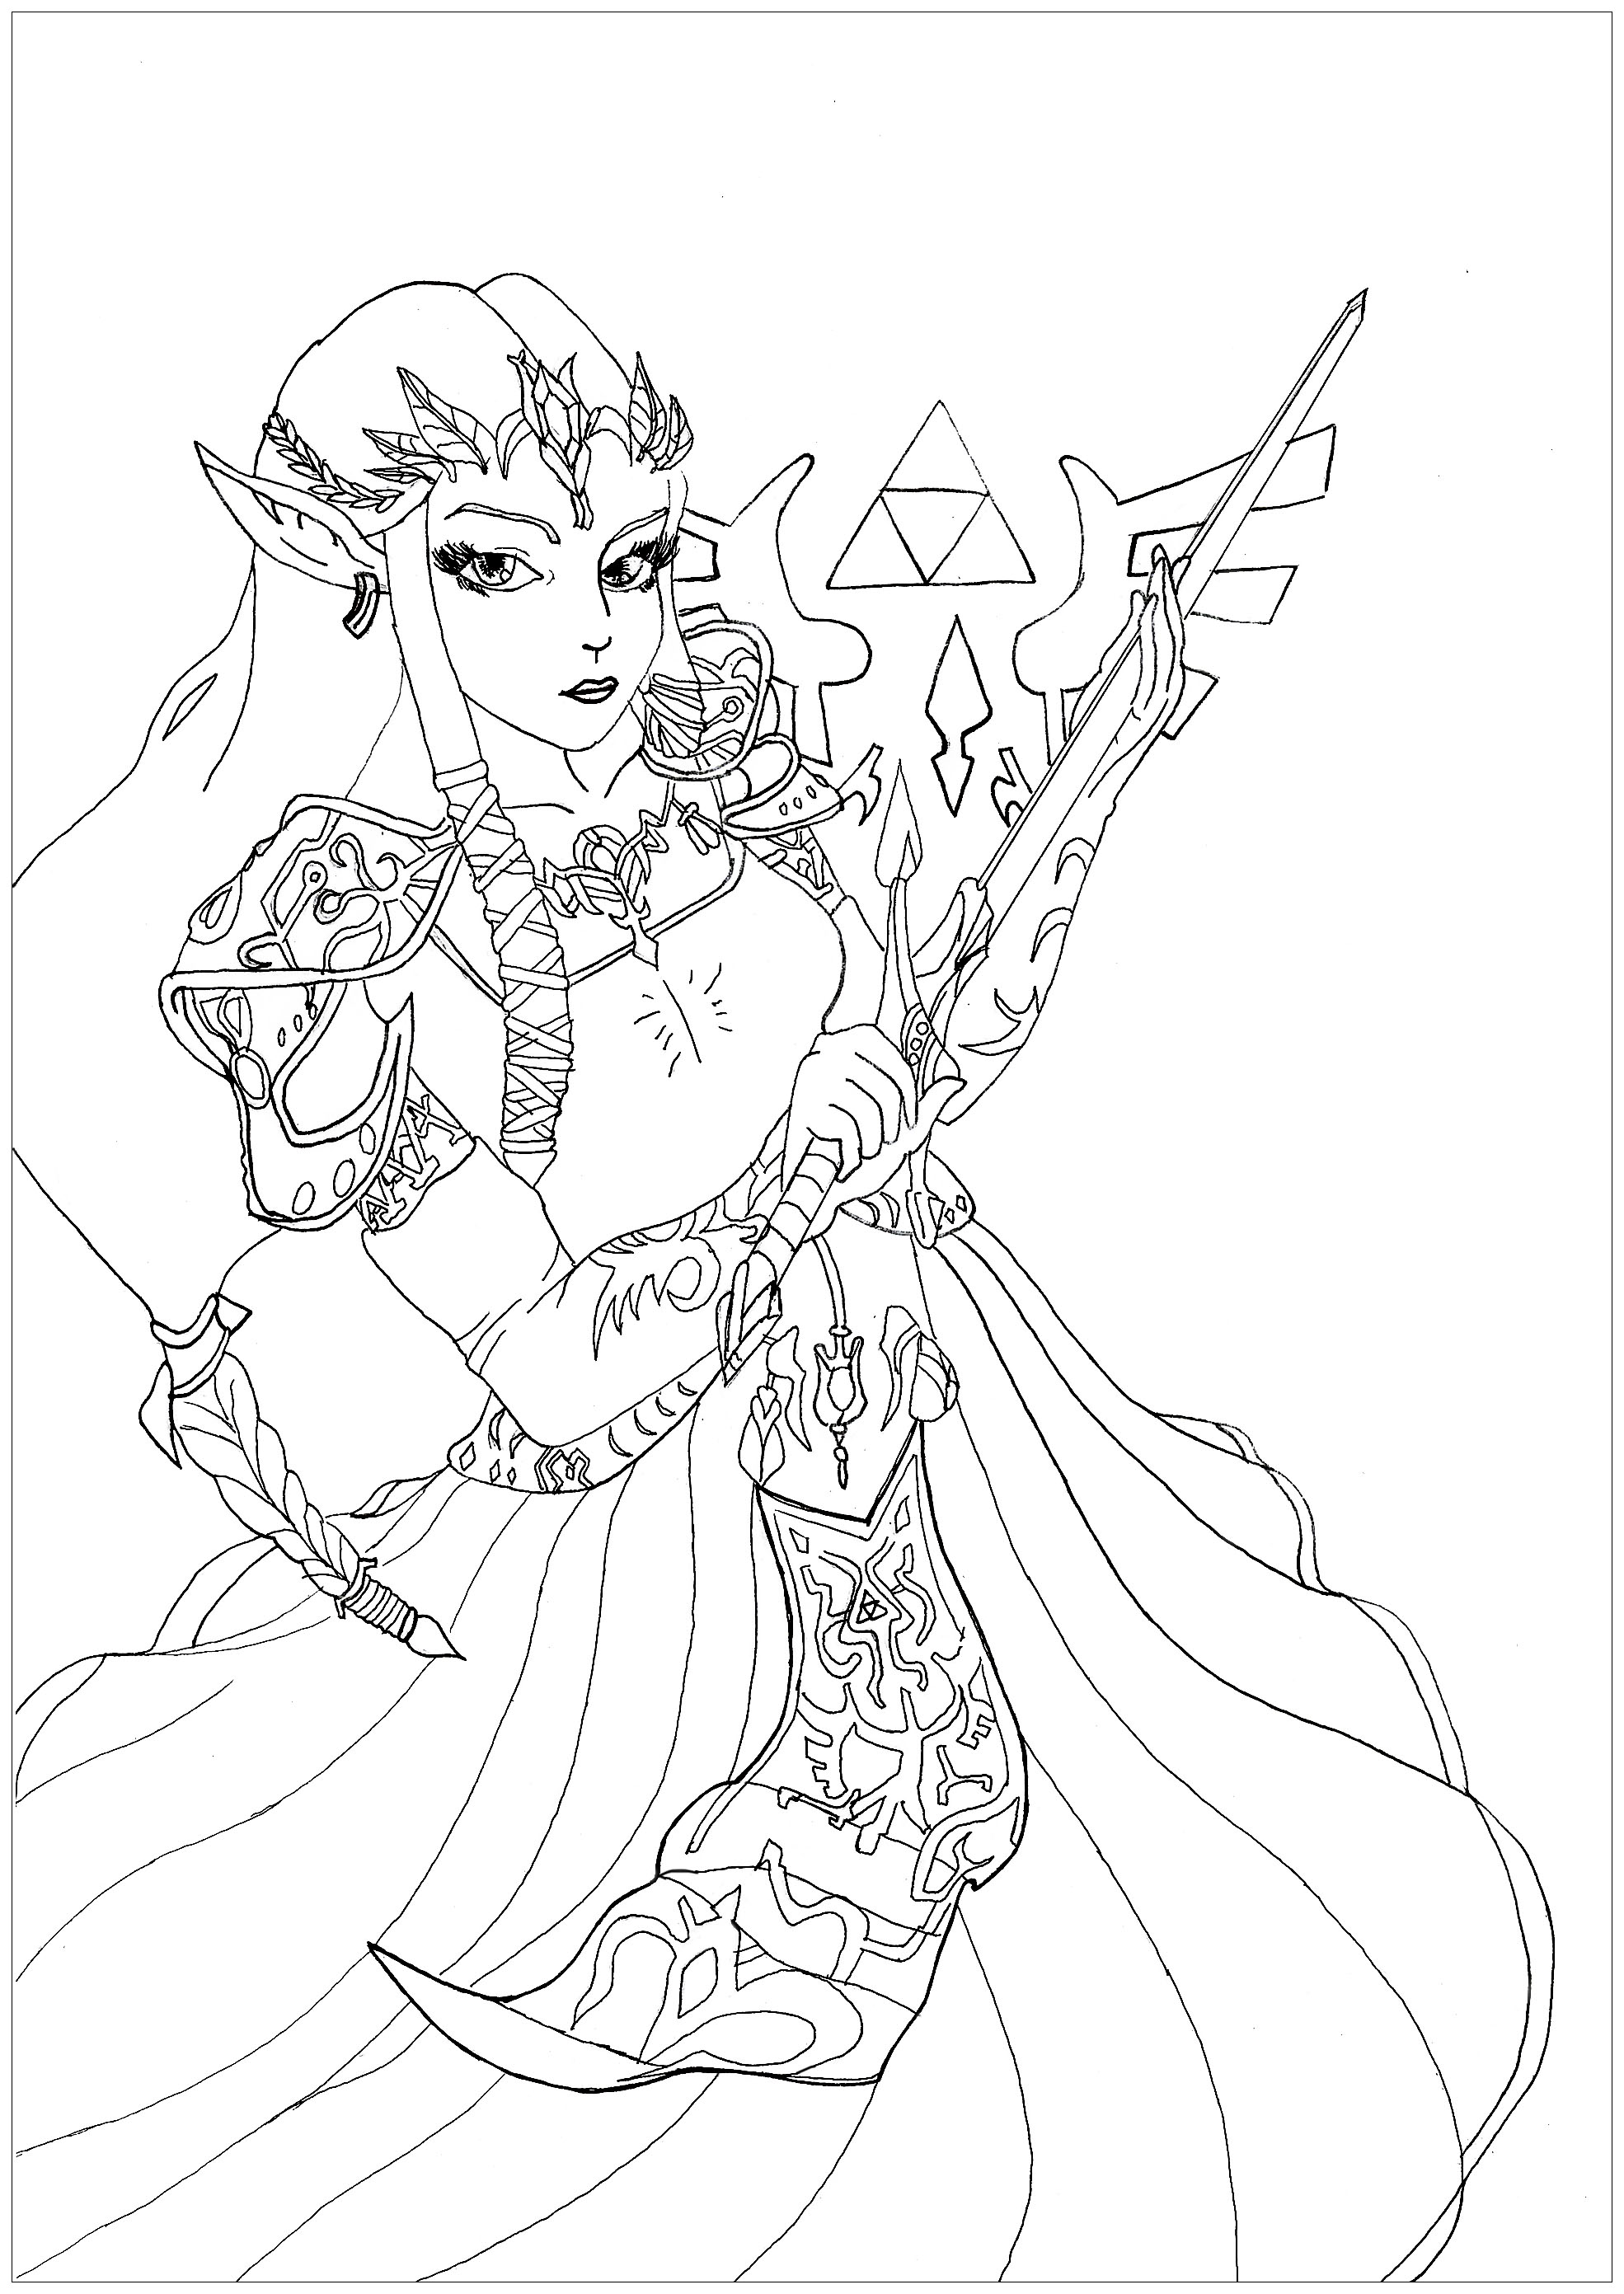 Coloring page of The Princess Zelda from the video game Twilight Princess